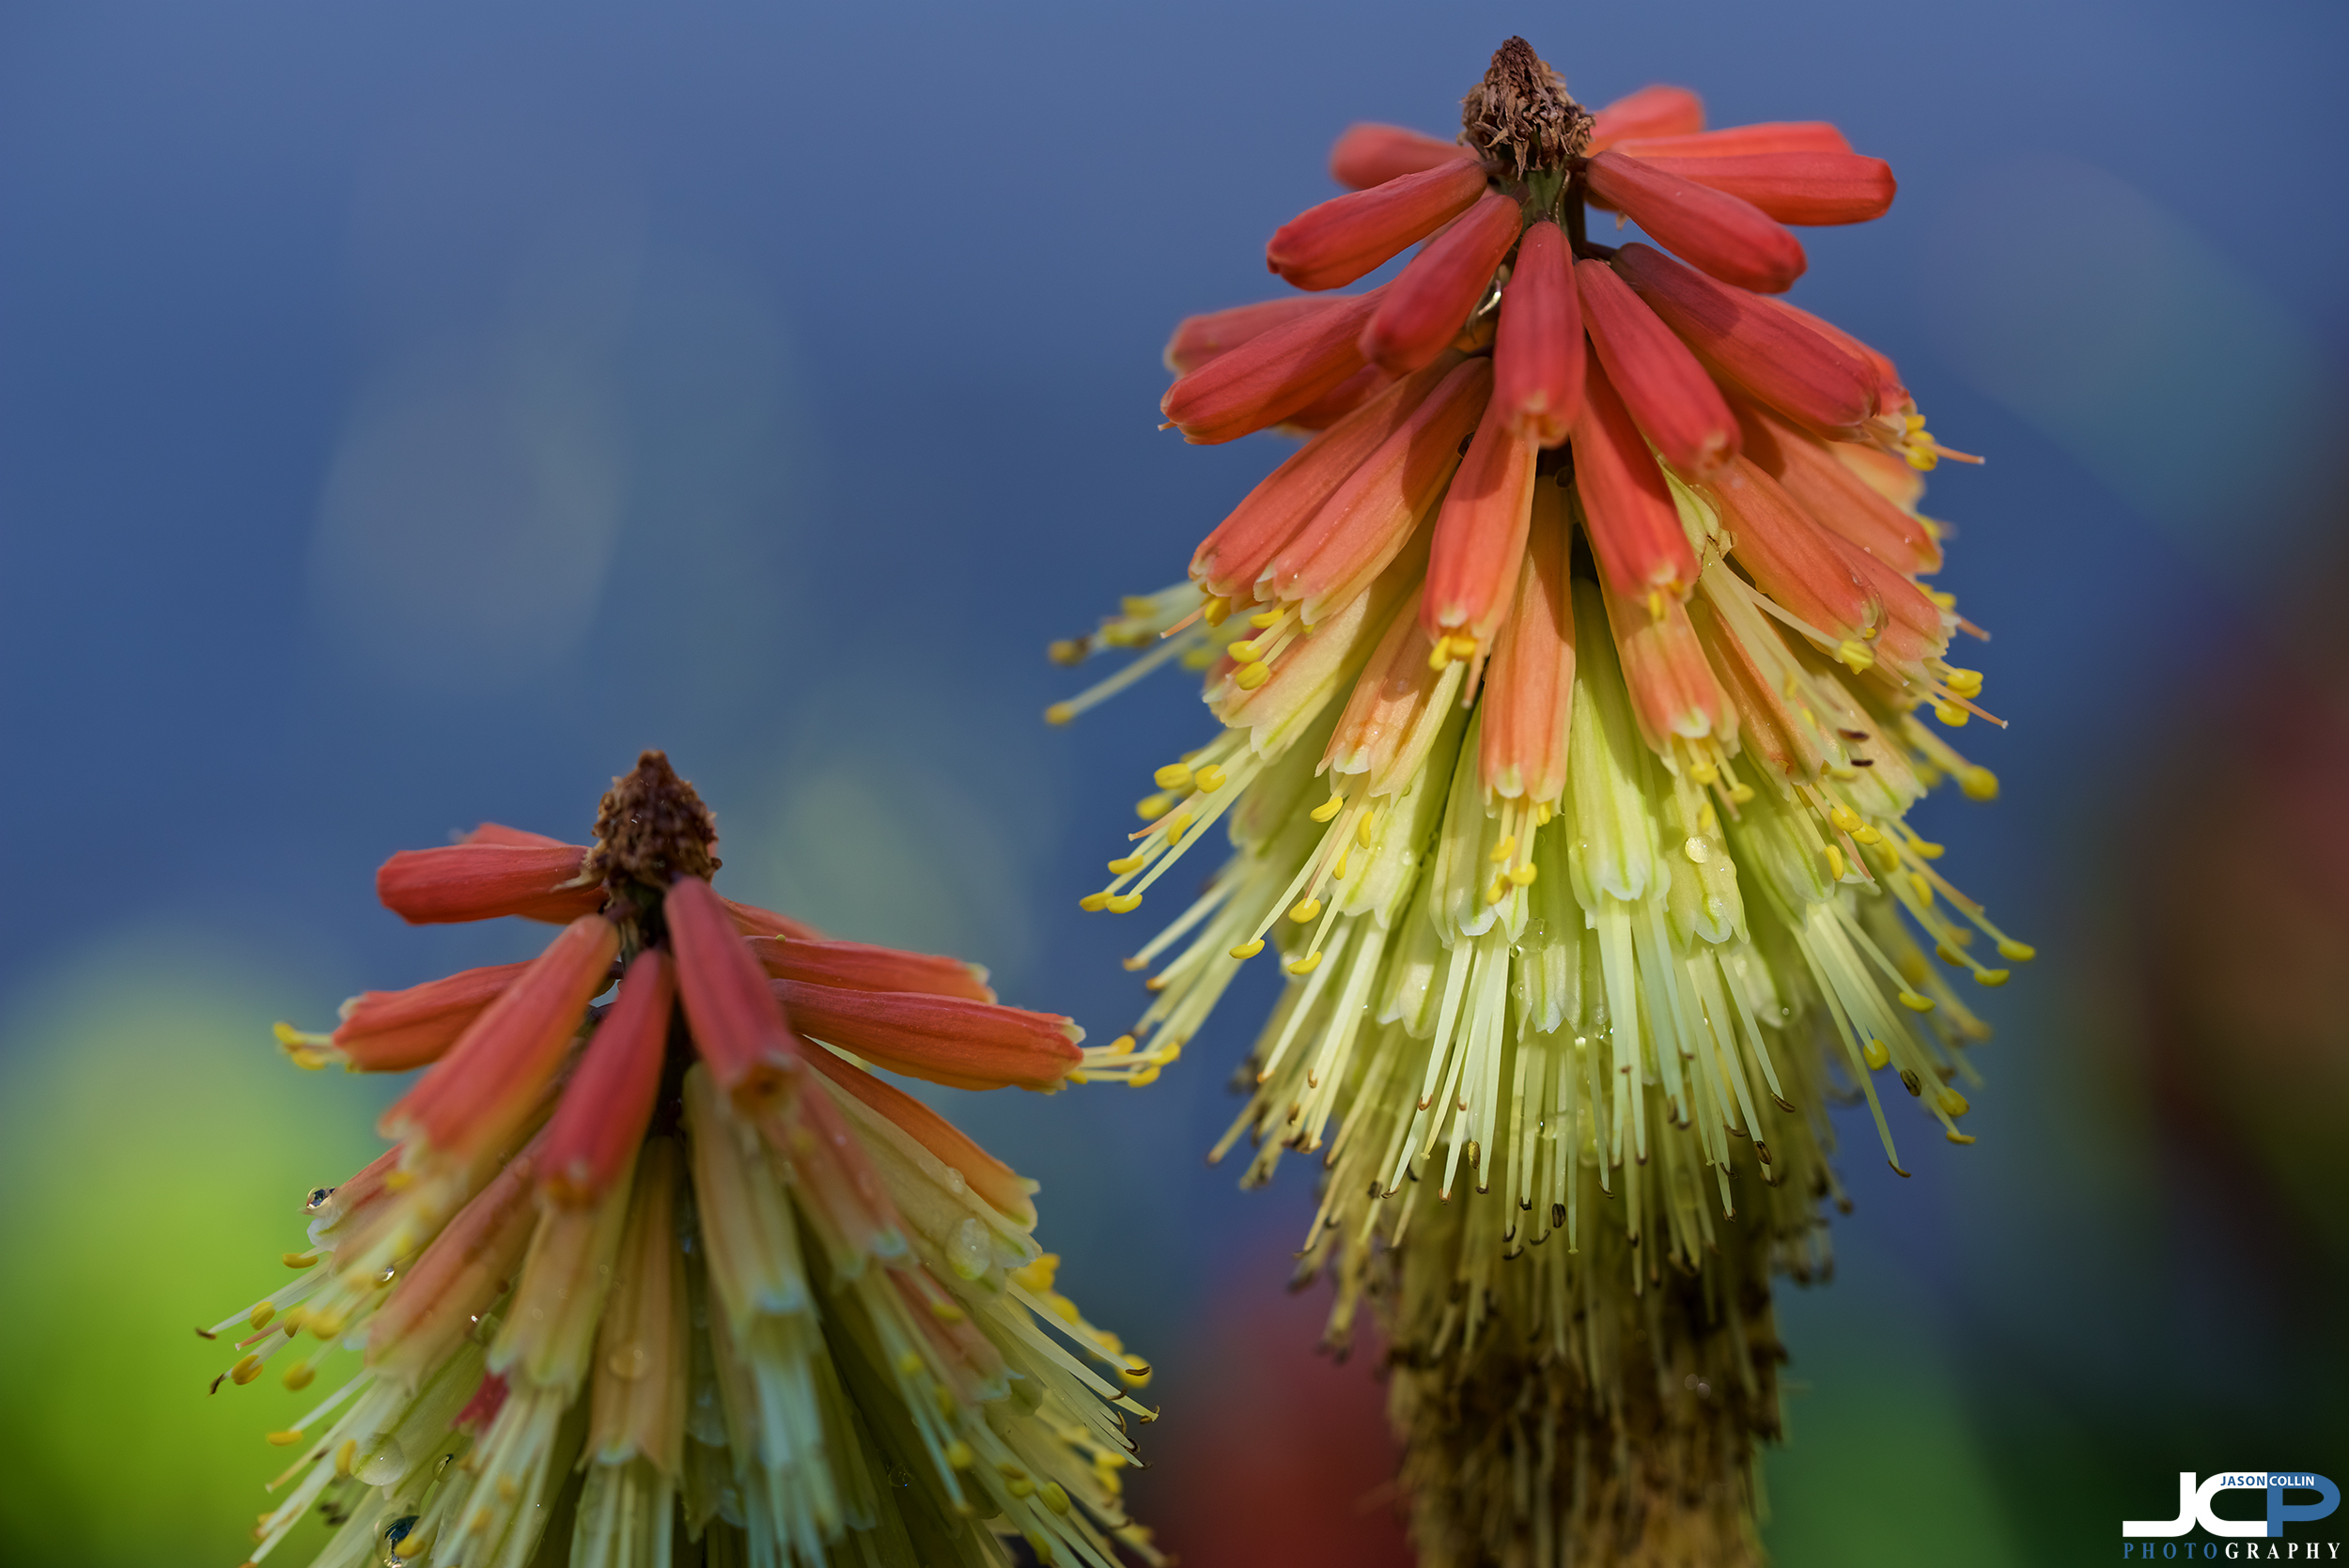 Flowers or rocket popsicles?? Visit Cloudcroft, New Mexico to see them!